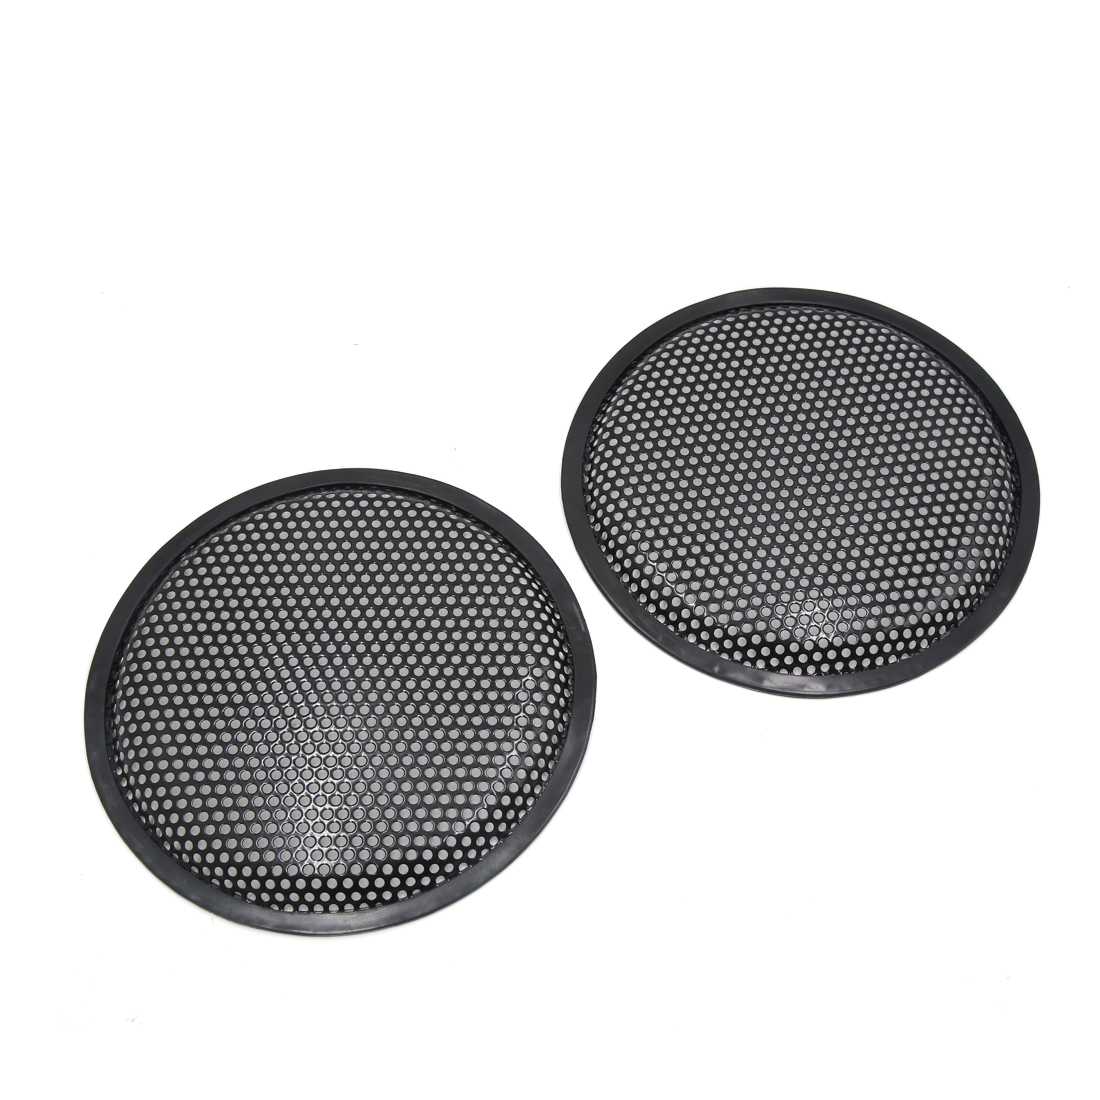 "2 Pcs 8"" Dia Black Metal Mesh Audio Speaker Subwoofer Dust Cover Protector for Auto Car"